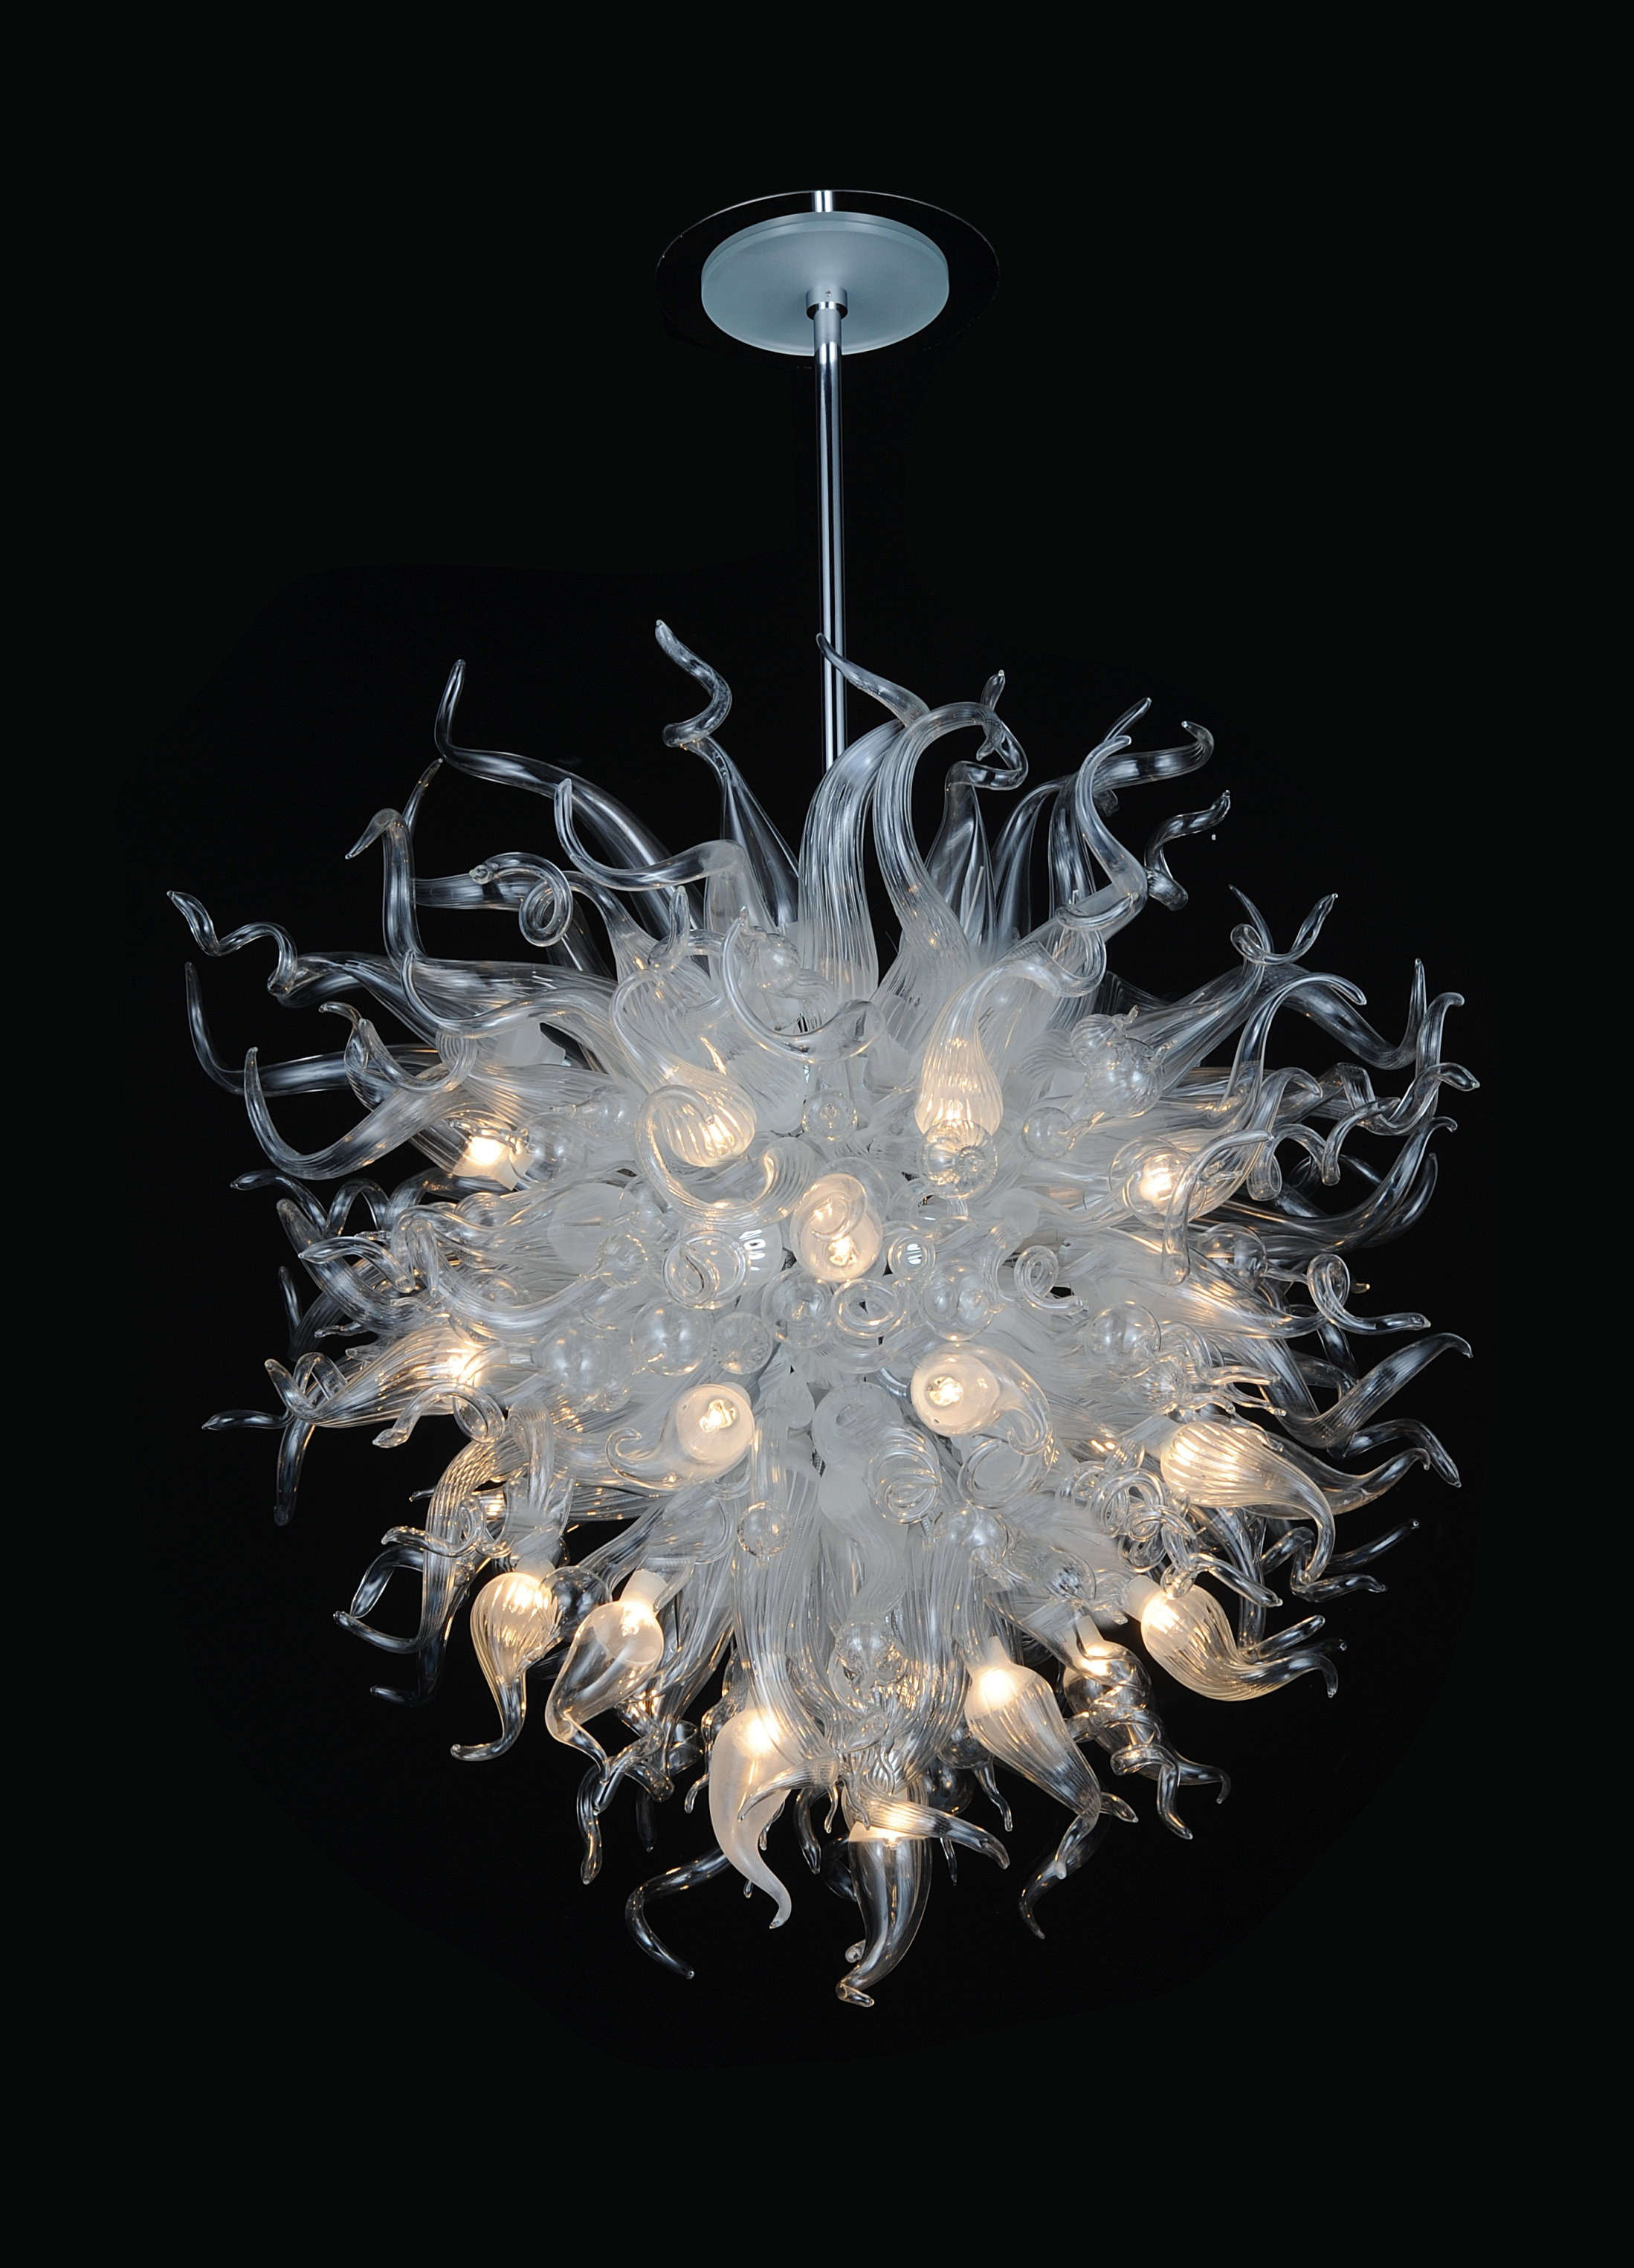 Modern Glass Chandeliers Pertaining To Modern Italian Chandeliers (Image 10 of 15)